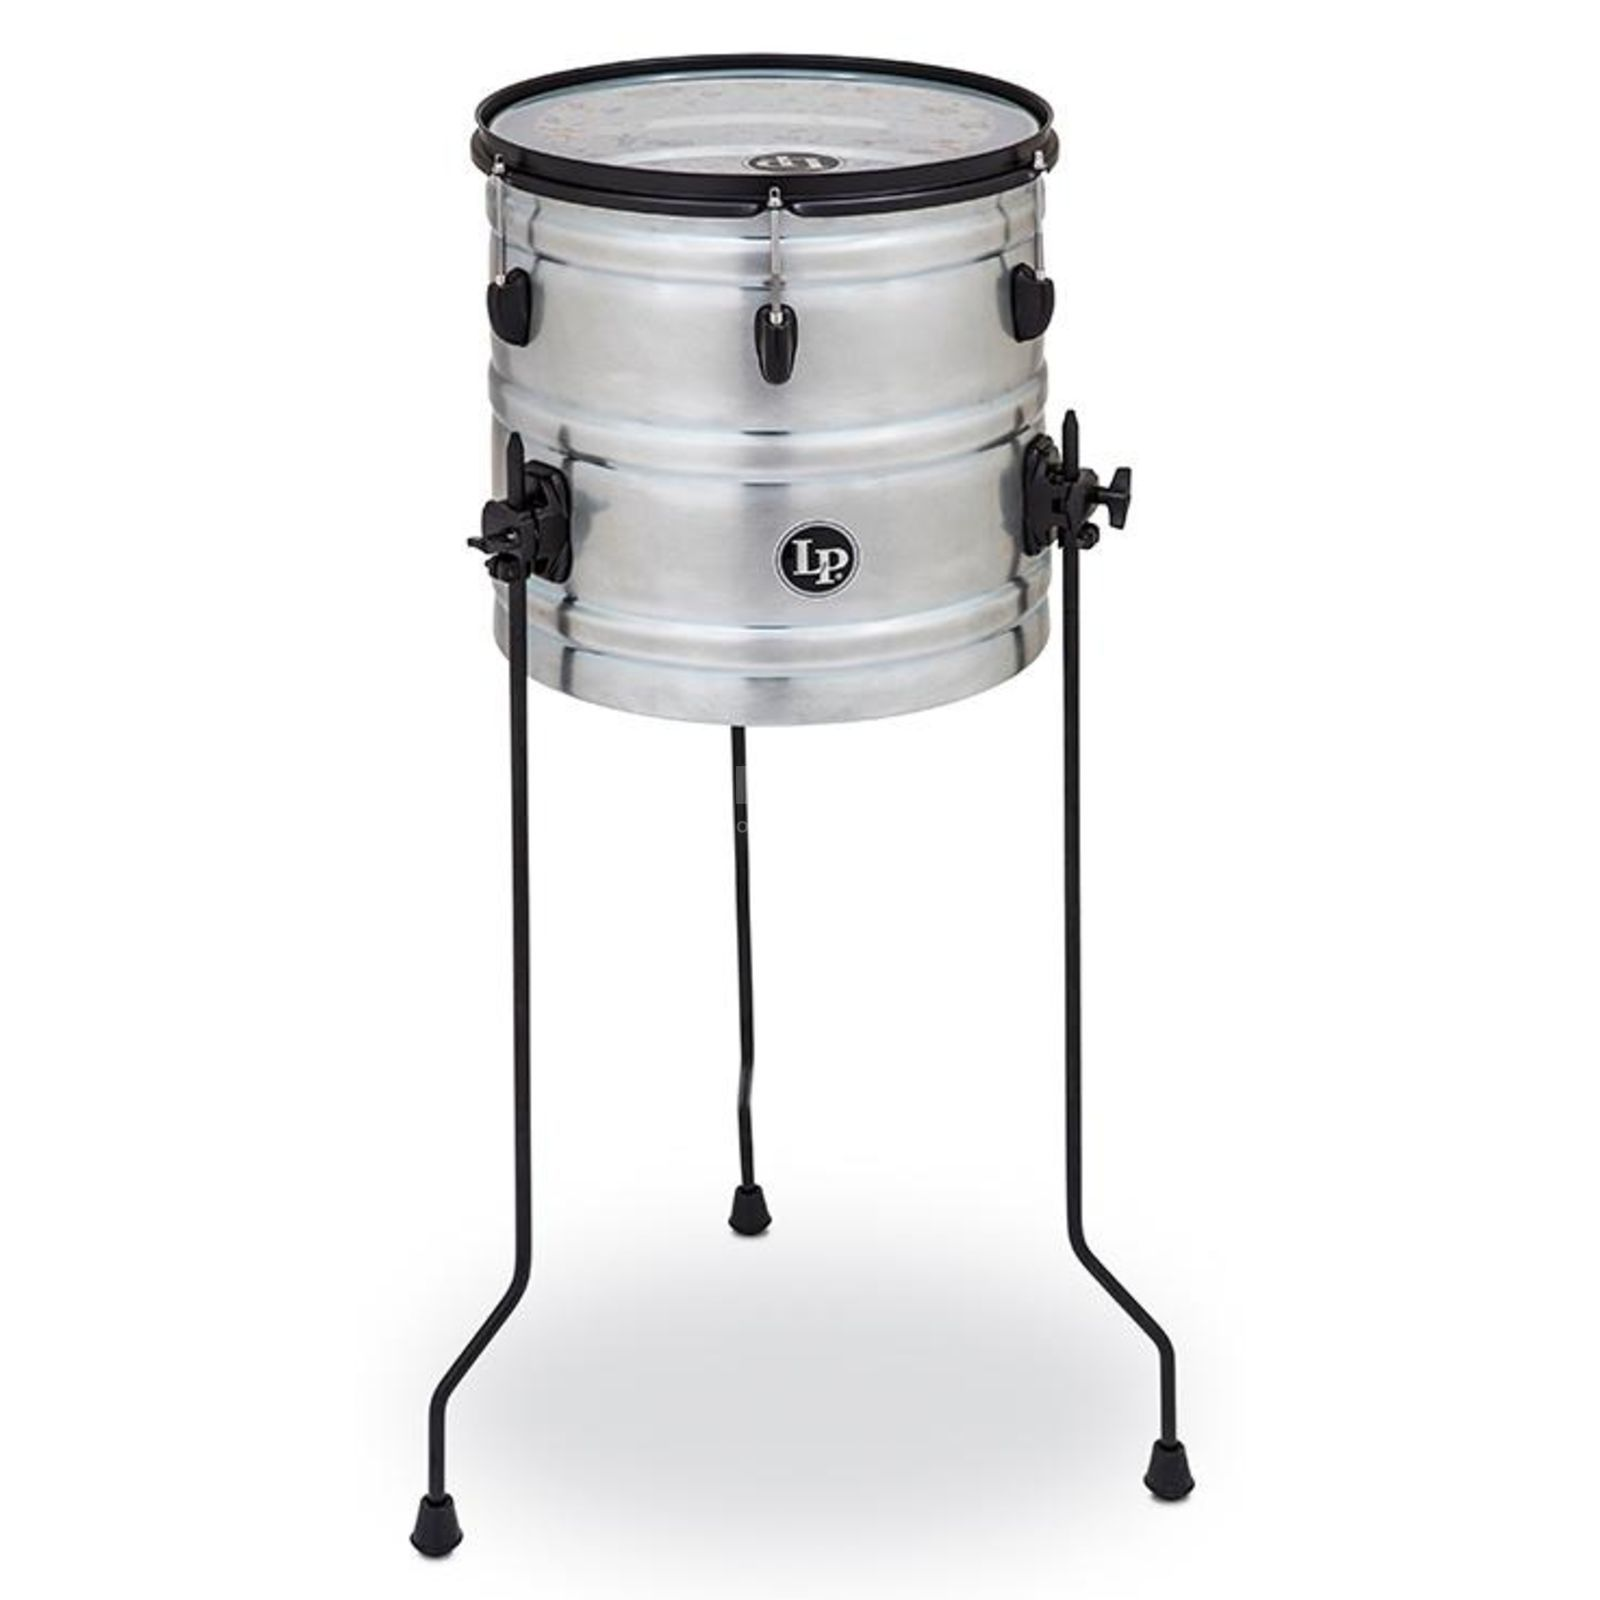 "Latin Percussion Street Can Drum LP1614, 14"", Raw Series Produktbillede"